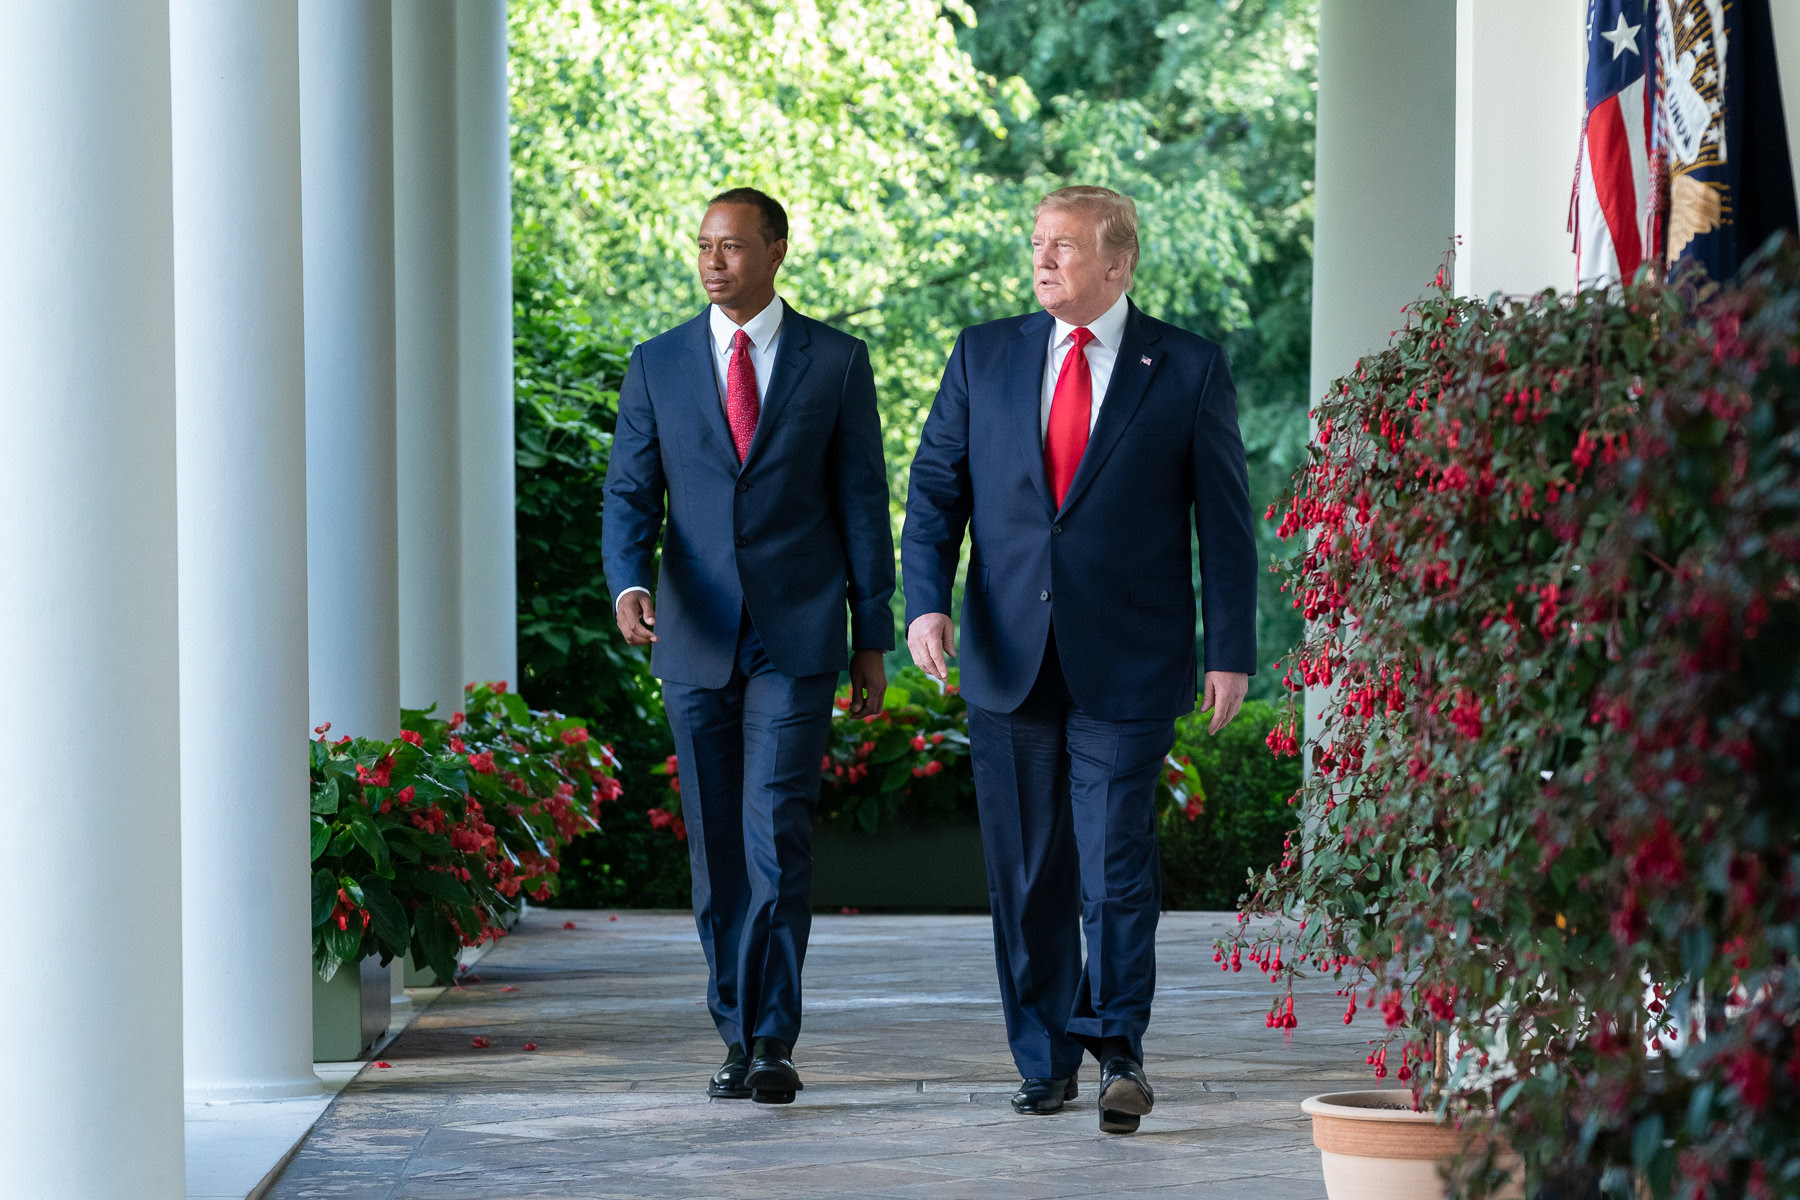 Tiger Woods and President Donald Trump at White House Presidential Medal of Freedom Ceremony